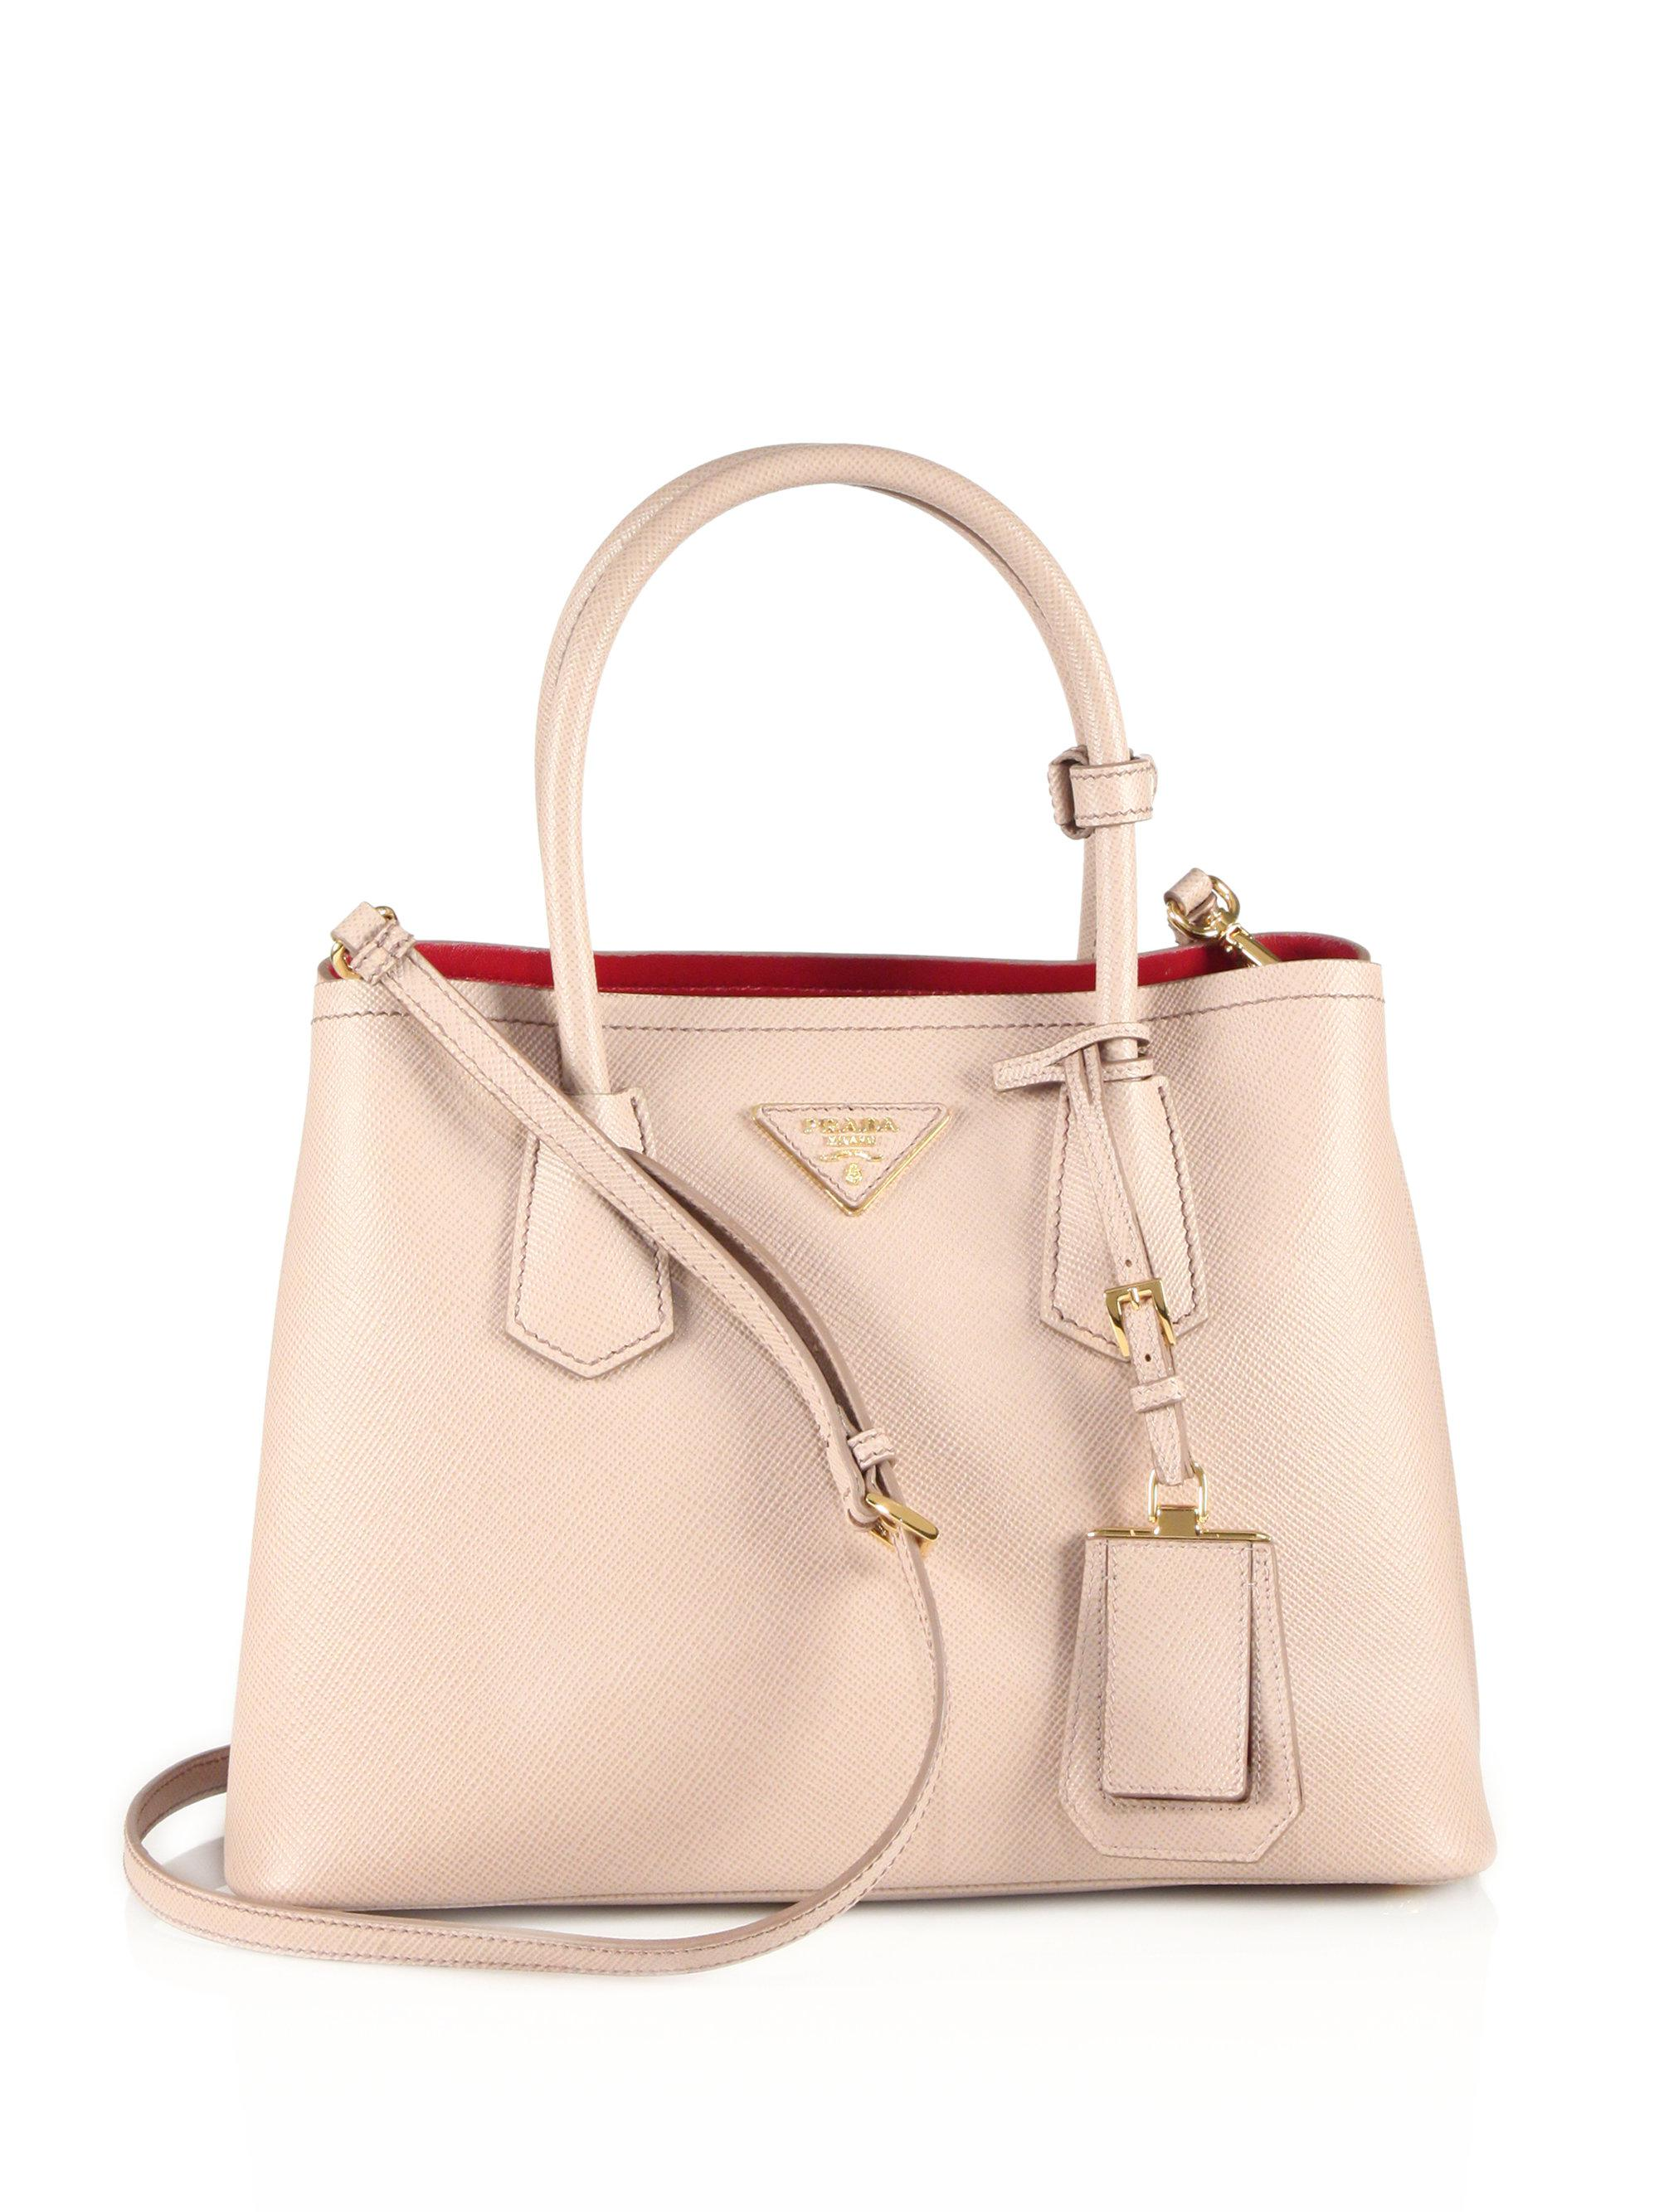 e86dfcc8d7b3 ... where to buy lyst prada saffiano cuir small double bag in natural f8901  0db33